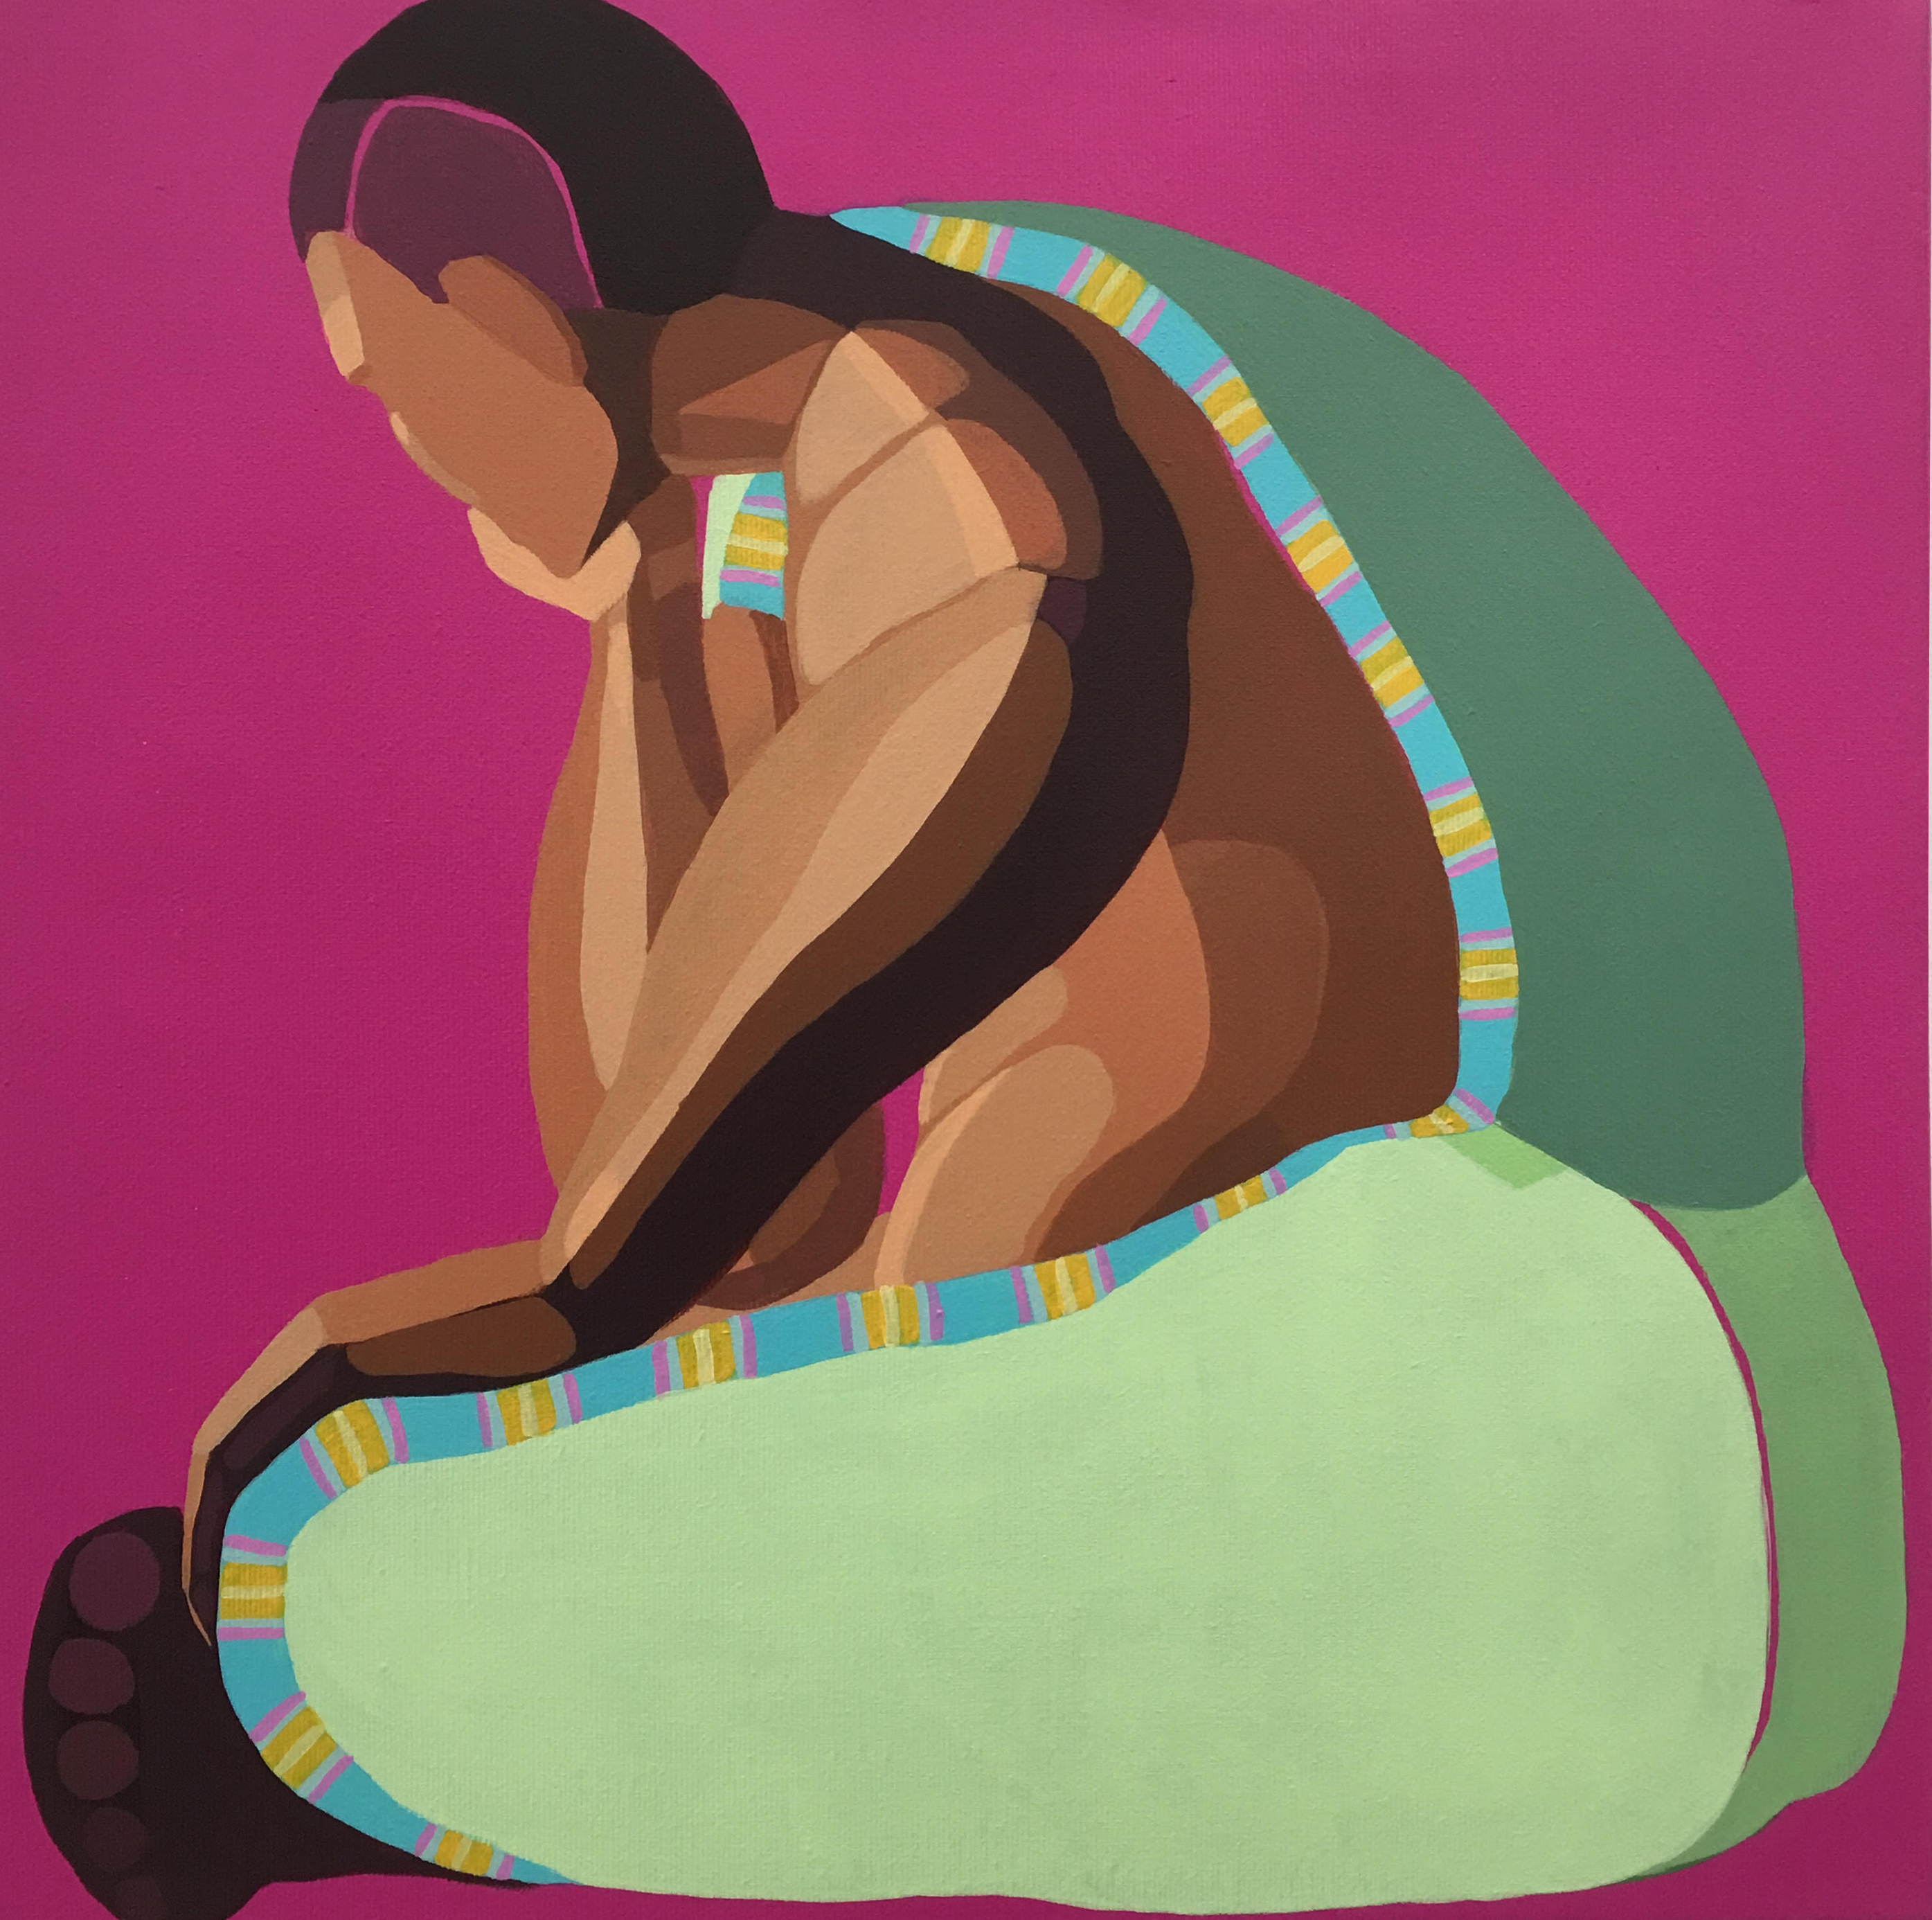 Nirit Takele,Sitting figure,2019,40x40 cm,$2,400